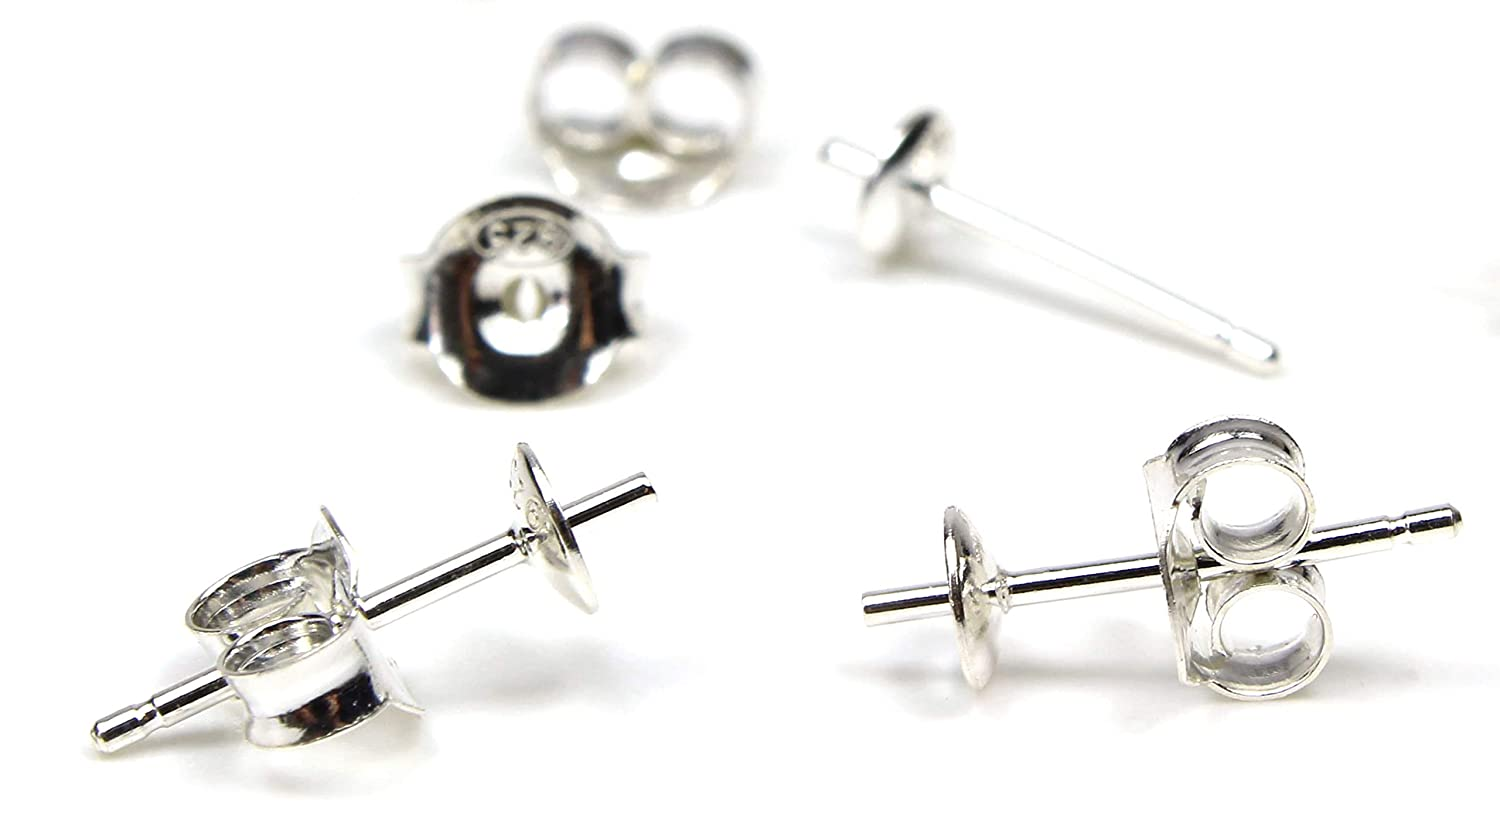 faebcd526 Earring Findings Studs Butterfly Backs 100% Sterling Silver | 5 Pairs | DIY  Jewellery Making | Post Finding Pins, Crafting Blank: Amazon.co.uk: Kitchen  & ...